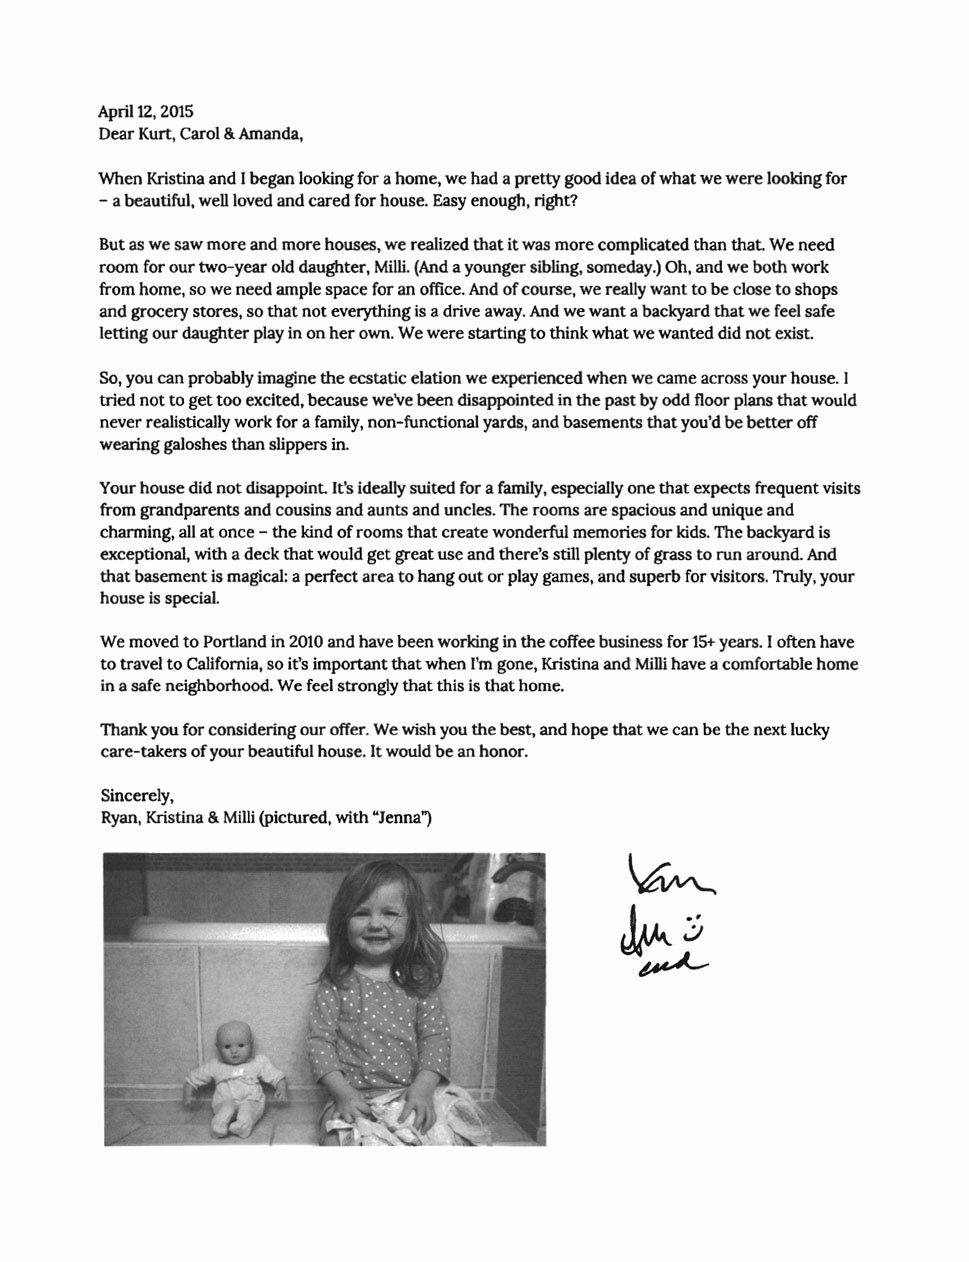 Home Offer Letter Template Lovely A Heartfelt Letter Convinced E Family to Sell their Home